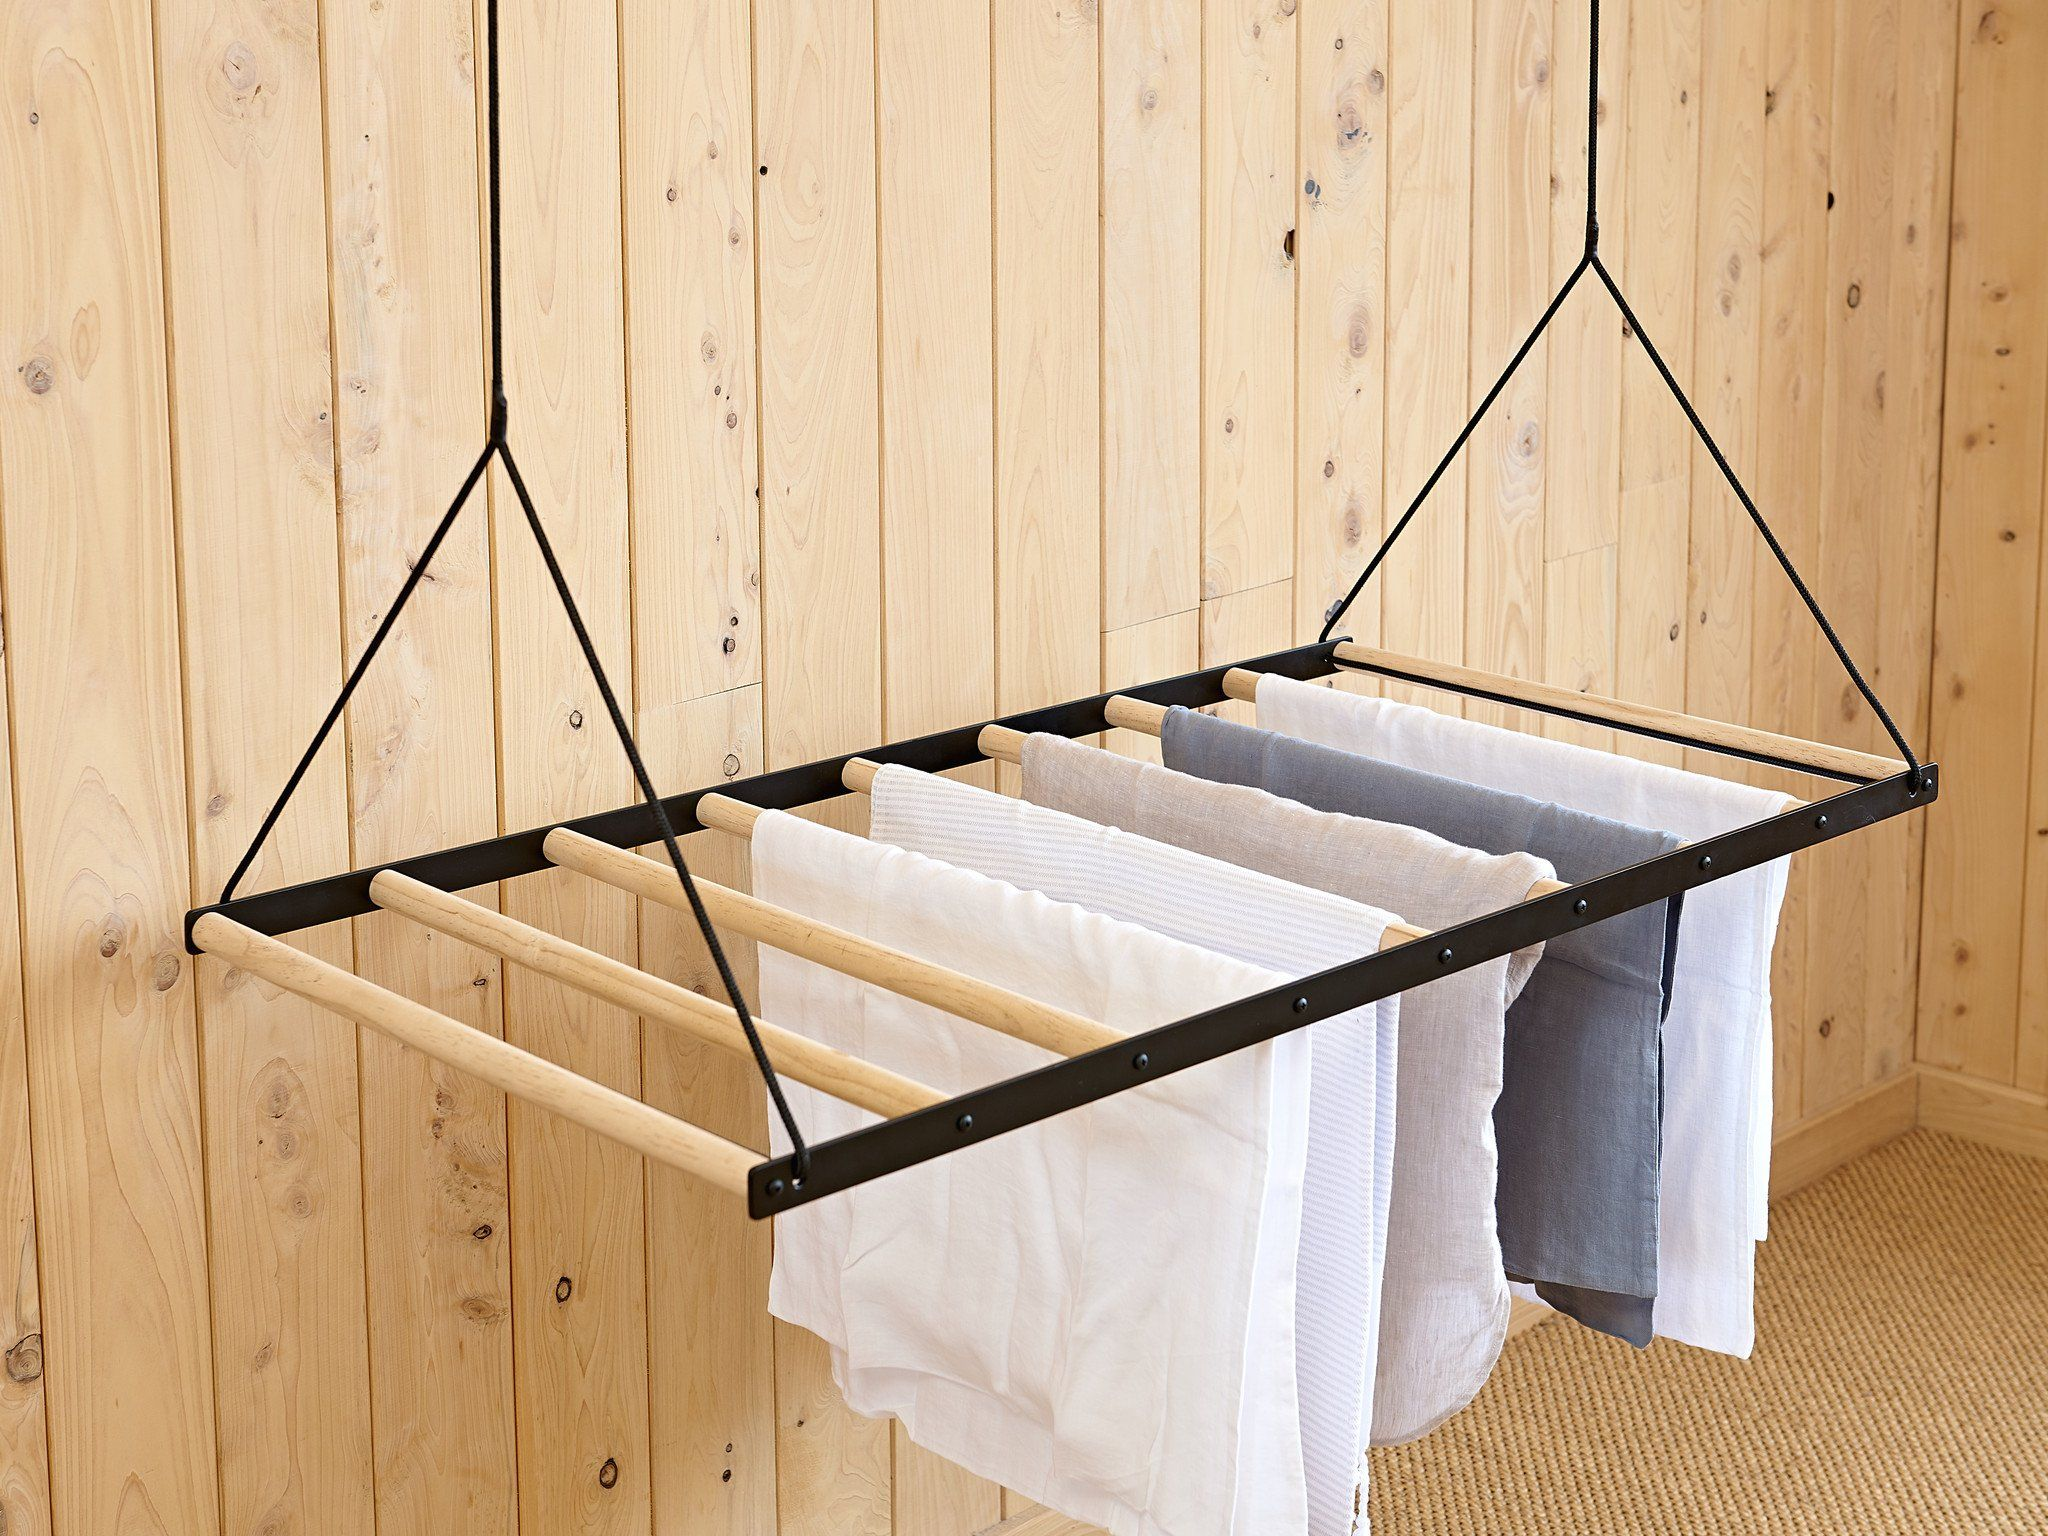 Hanging Drying Rack Hanging Drying Rack Hanging Clothes Drying